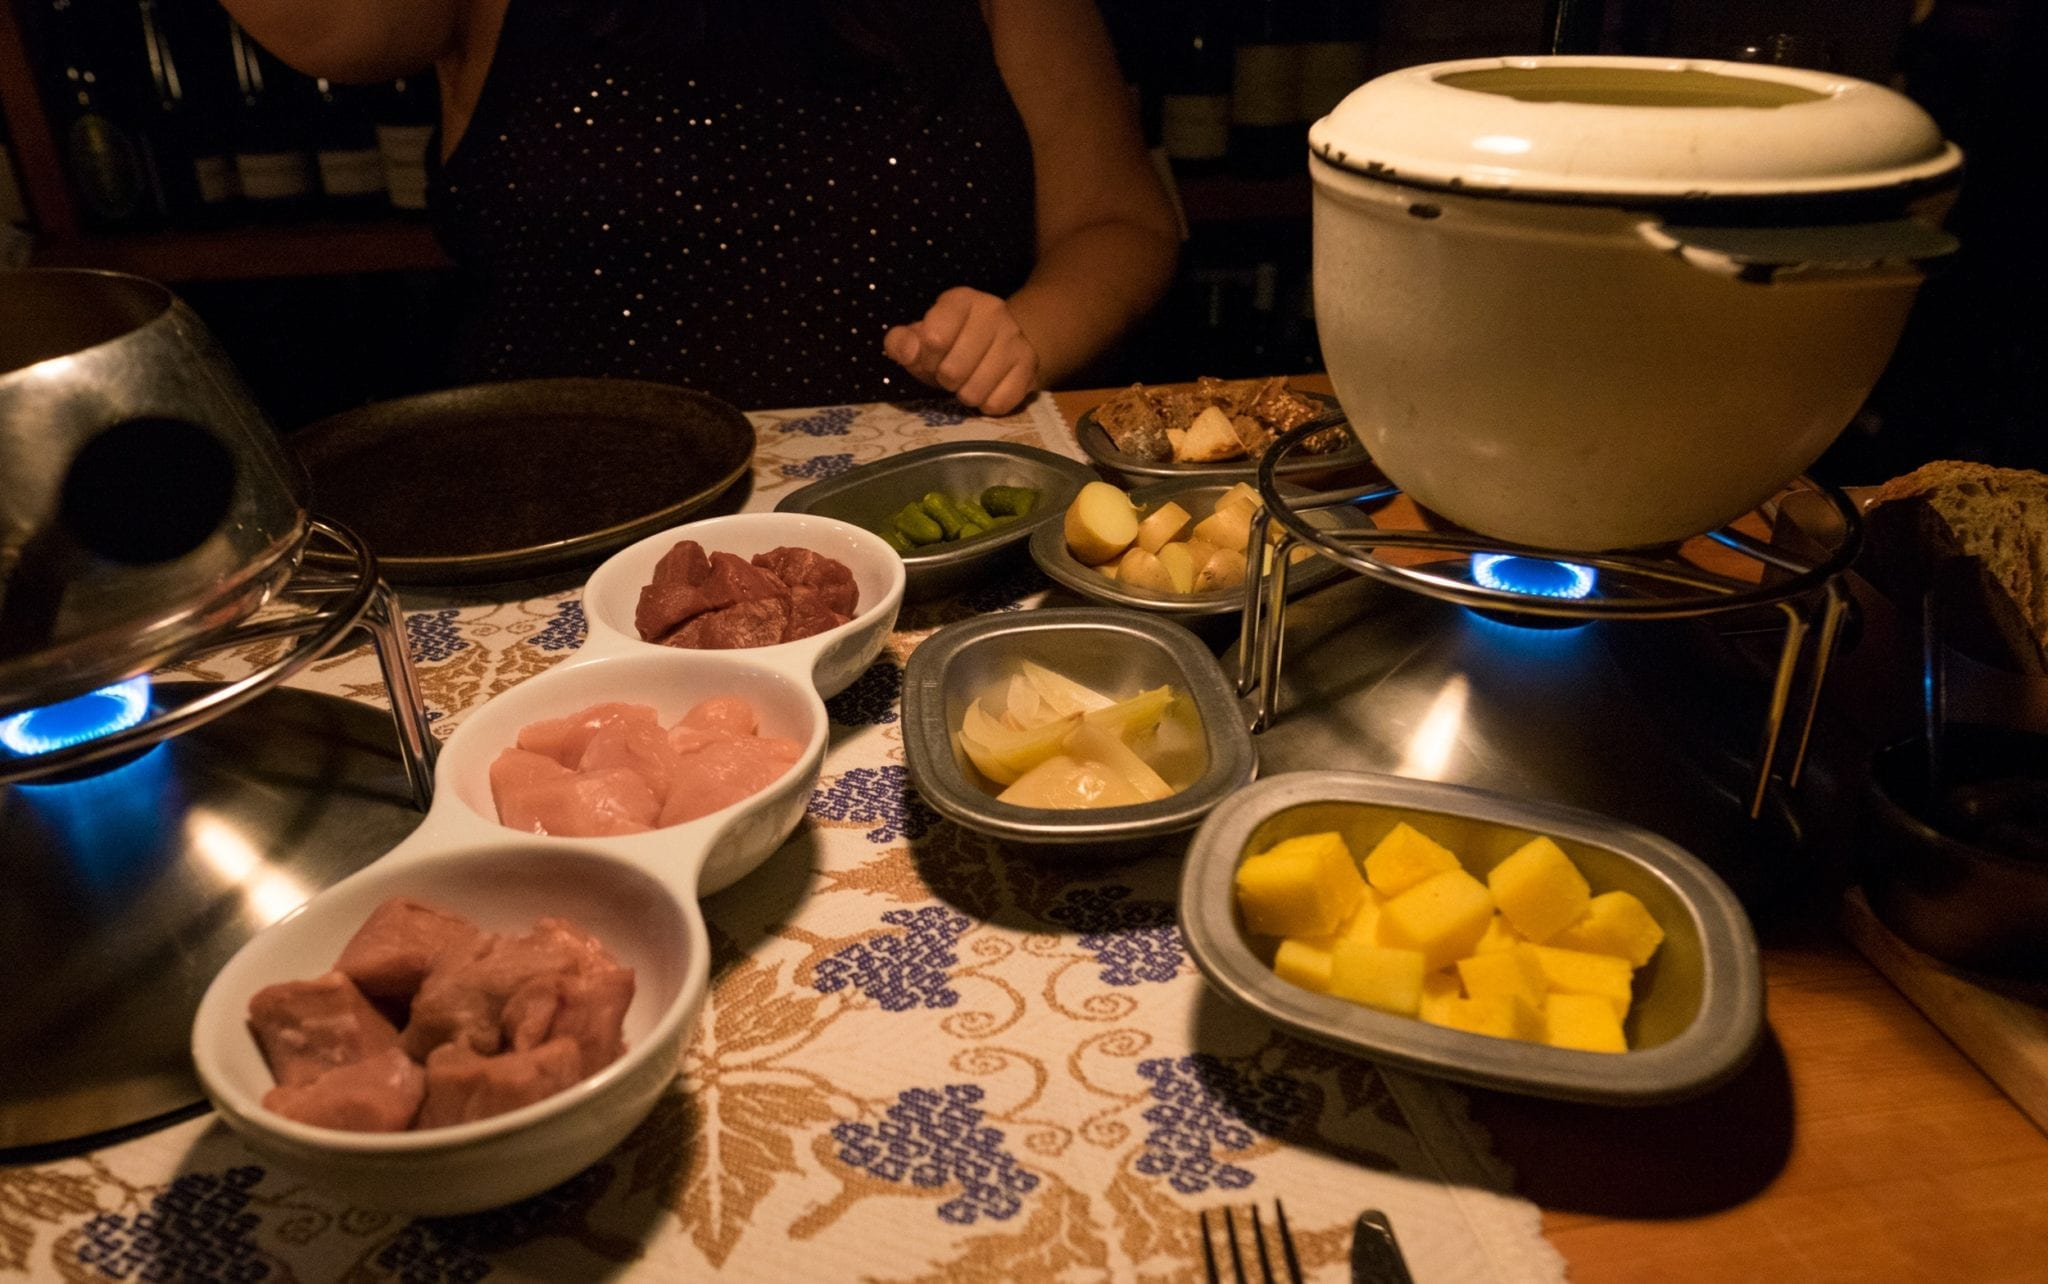 Fondue pots with accoutrements in the front: chicken, veal, and beef, plus polenta, onions, and other small items for dipping.